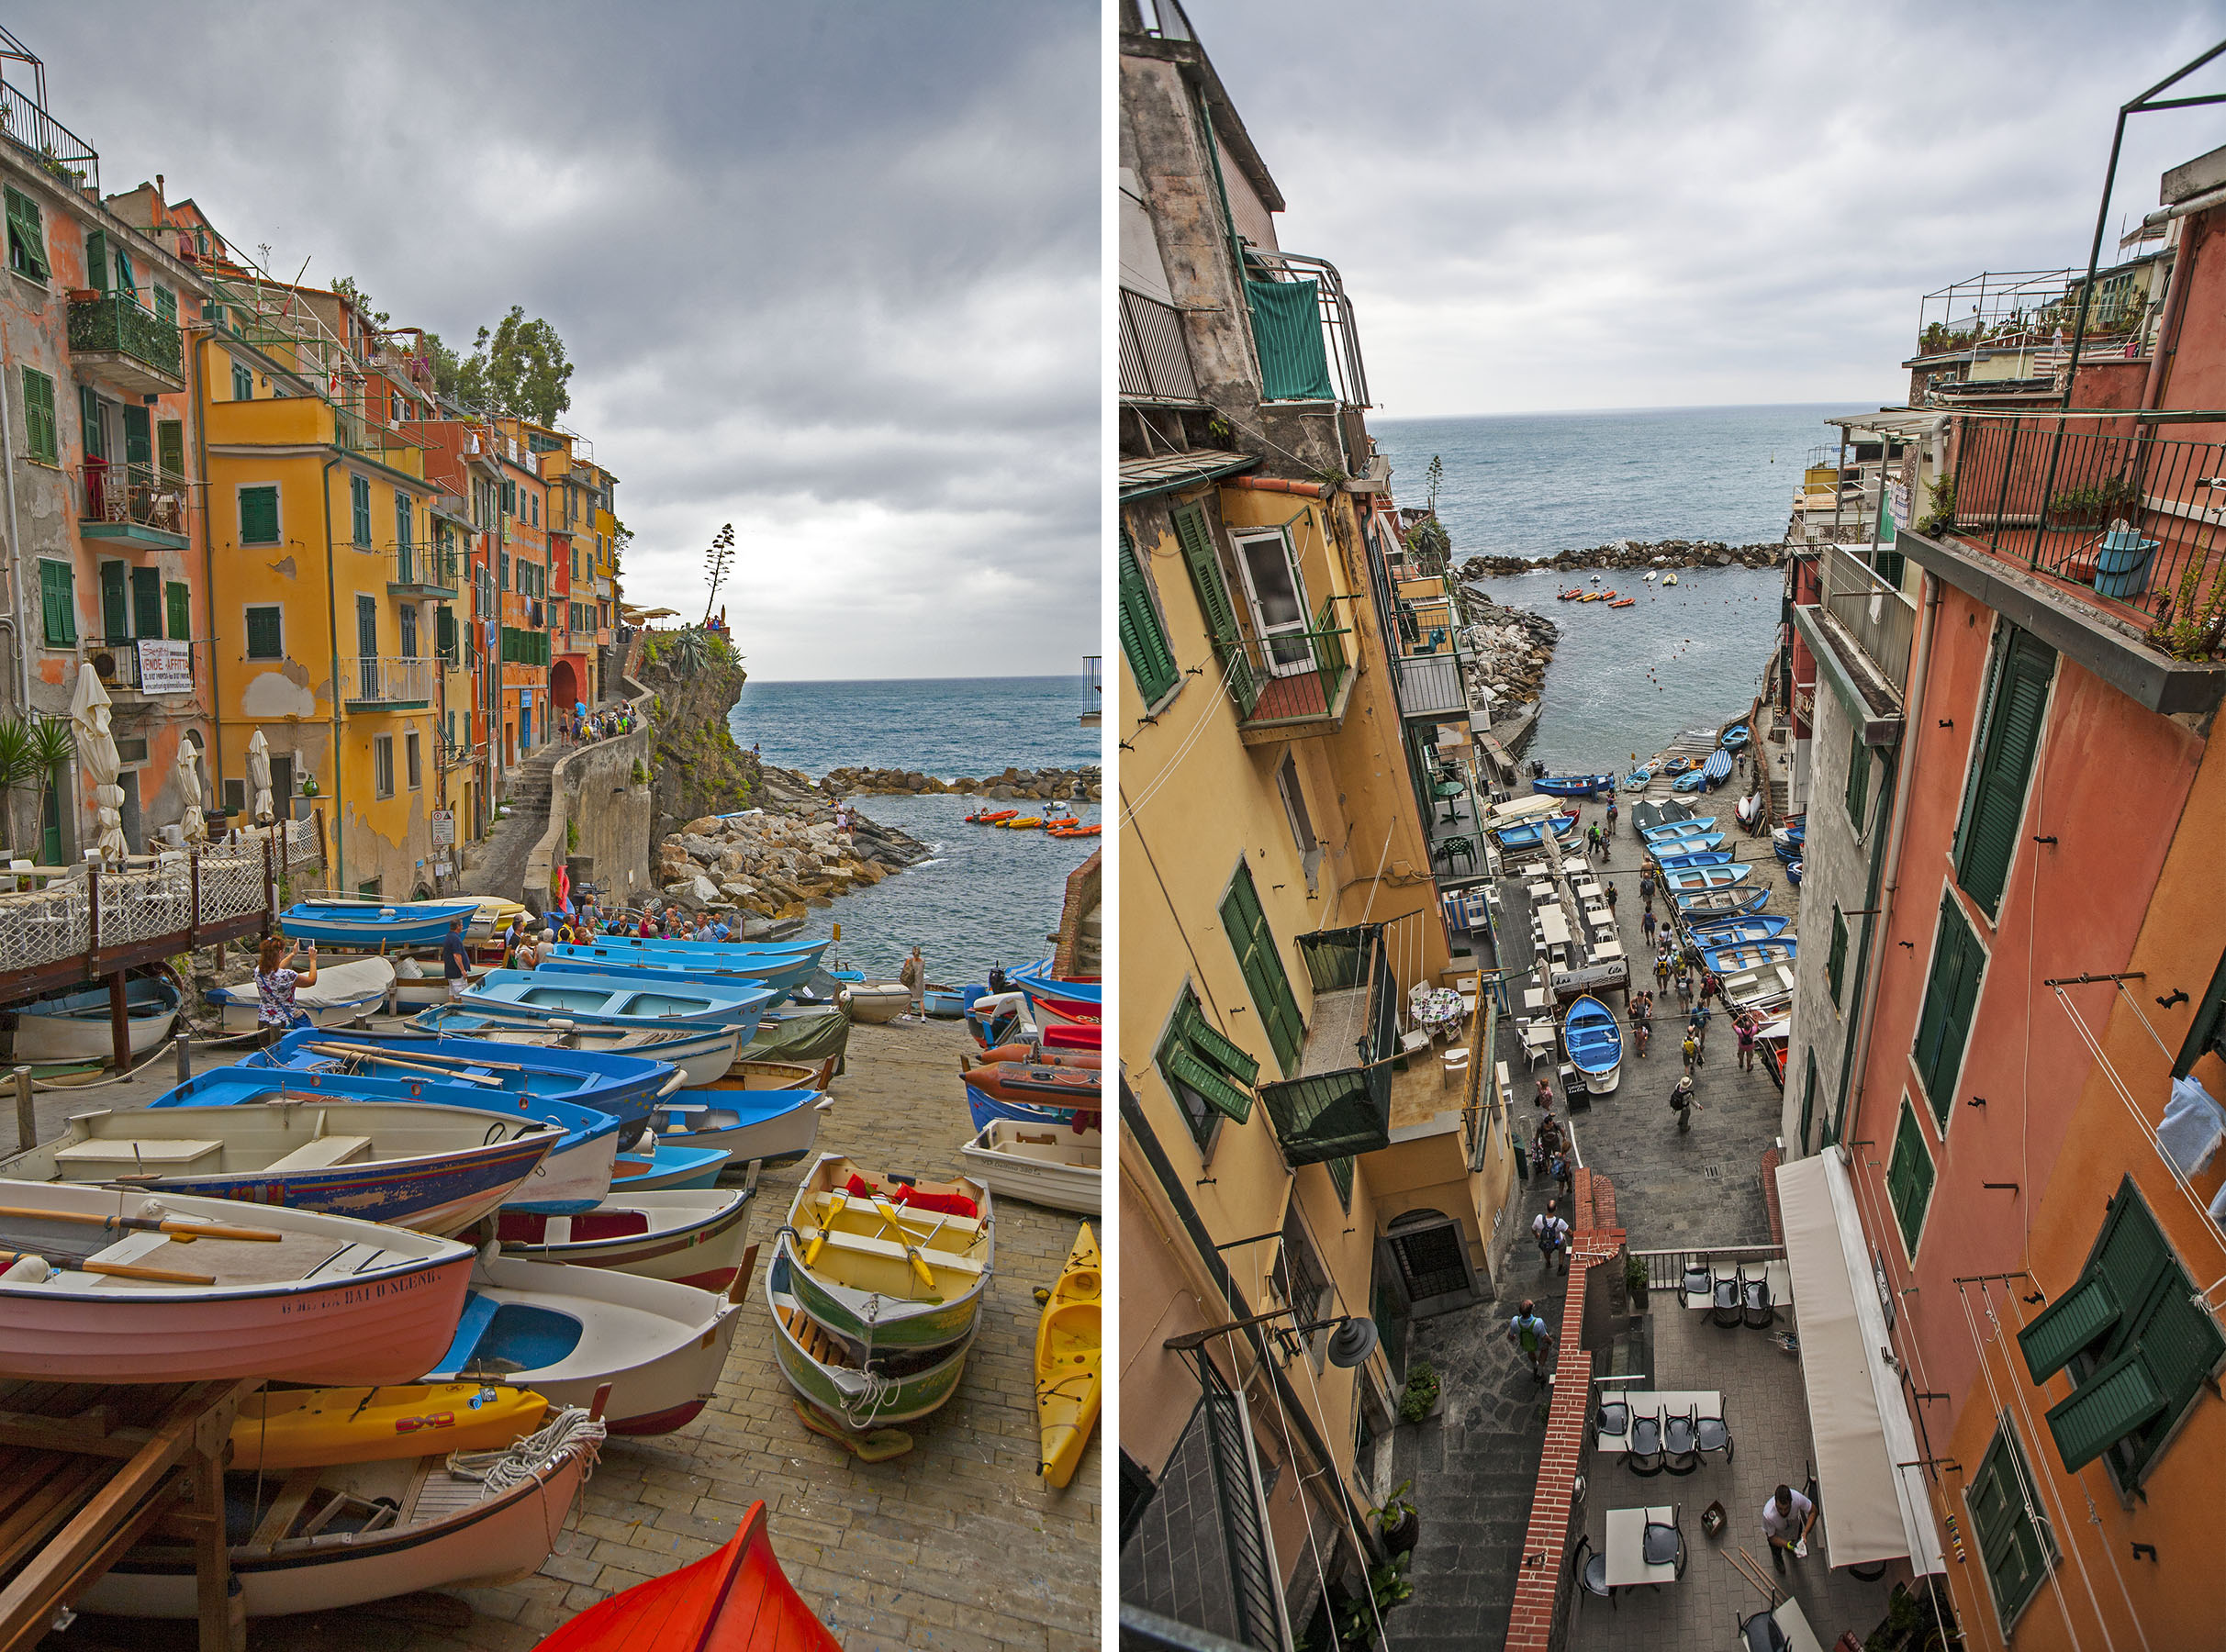 Two Weeks In Italy: Cinque Terre